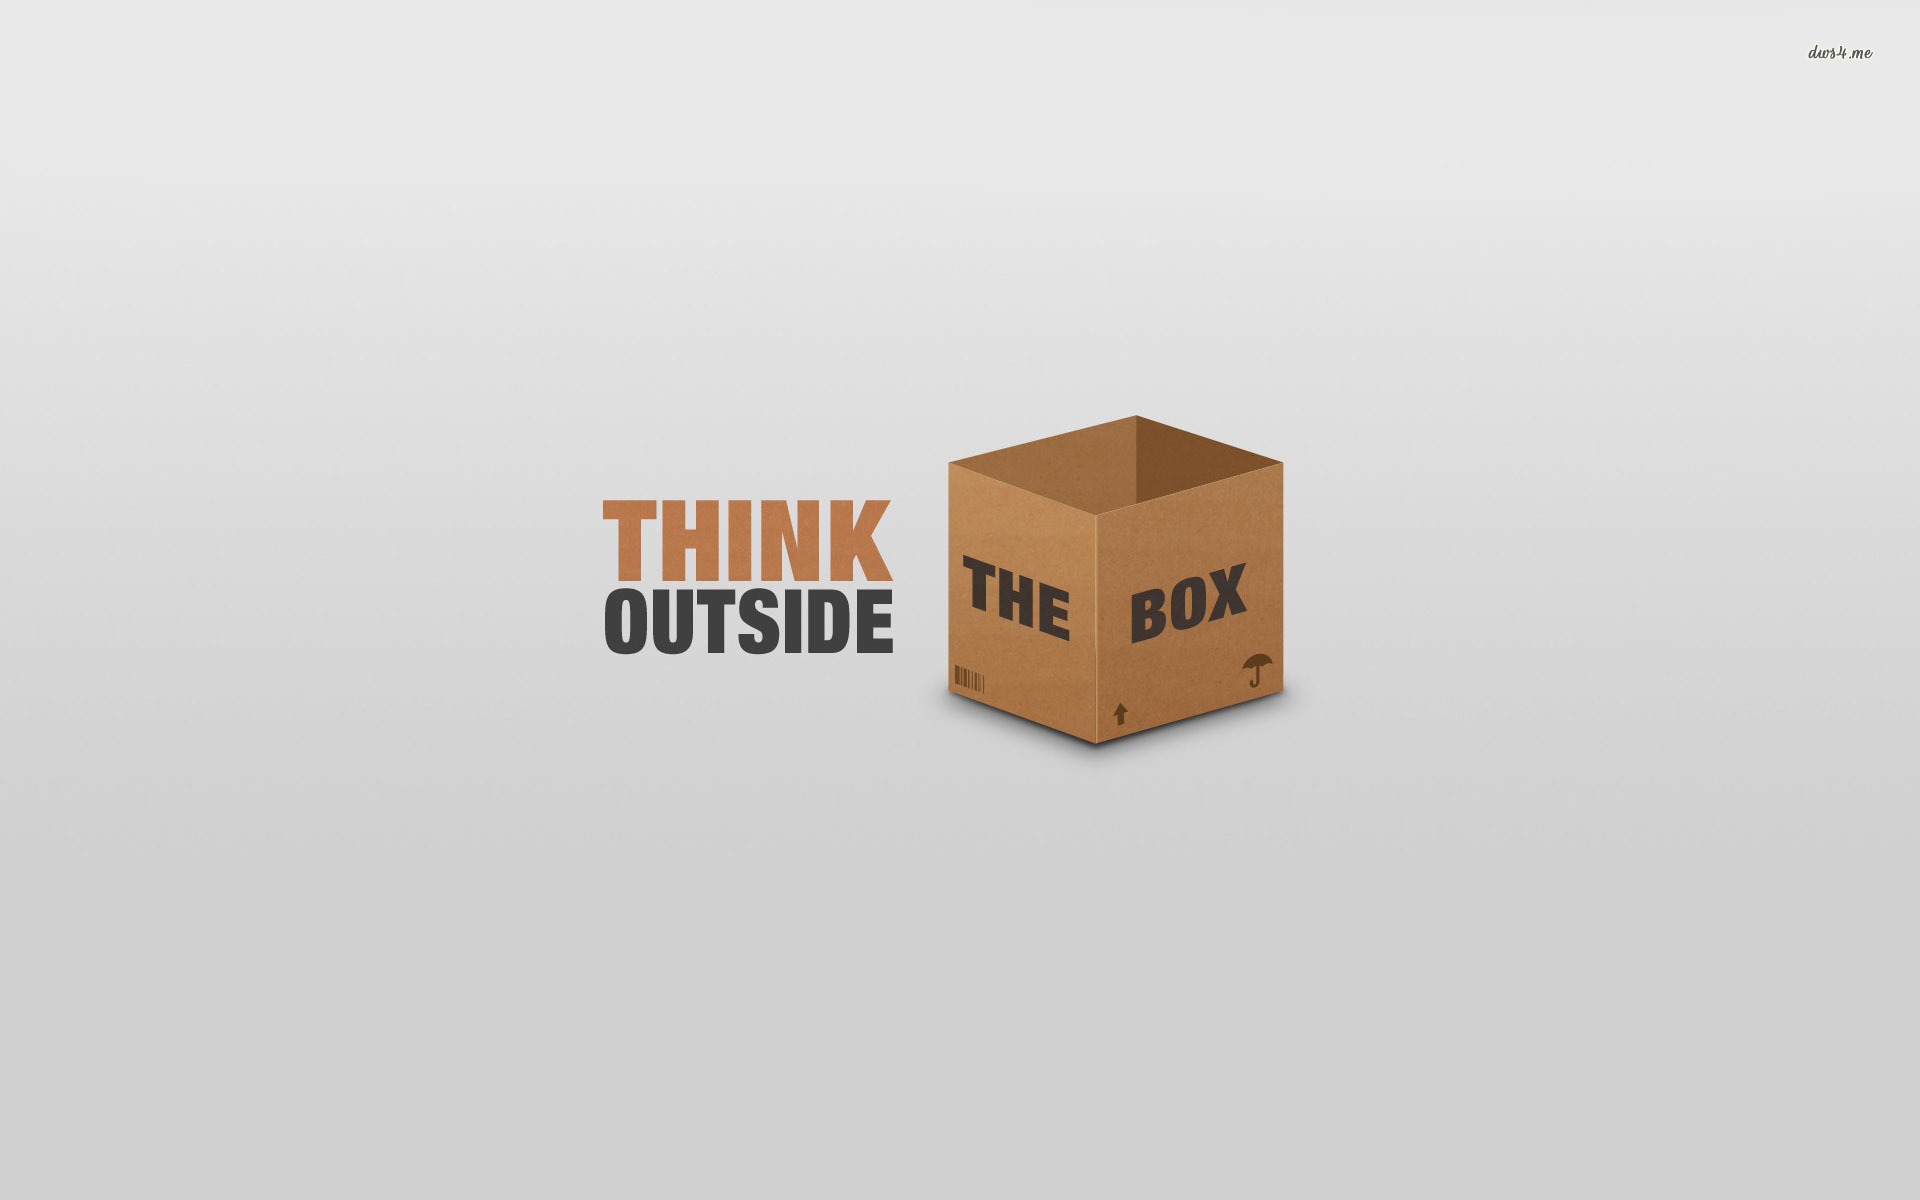 24004-think-outside-the-box-1920x1200-typography-wallpaper